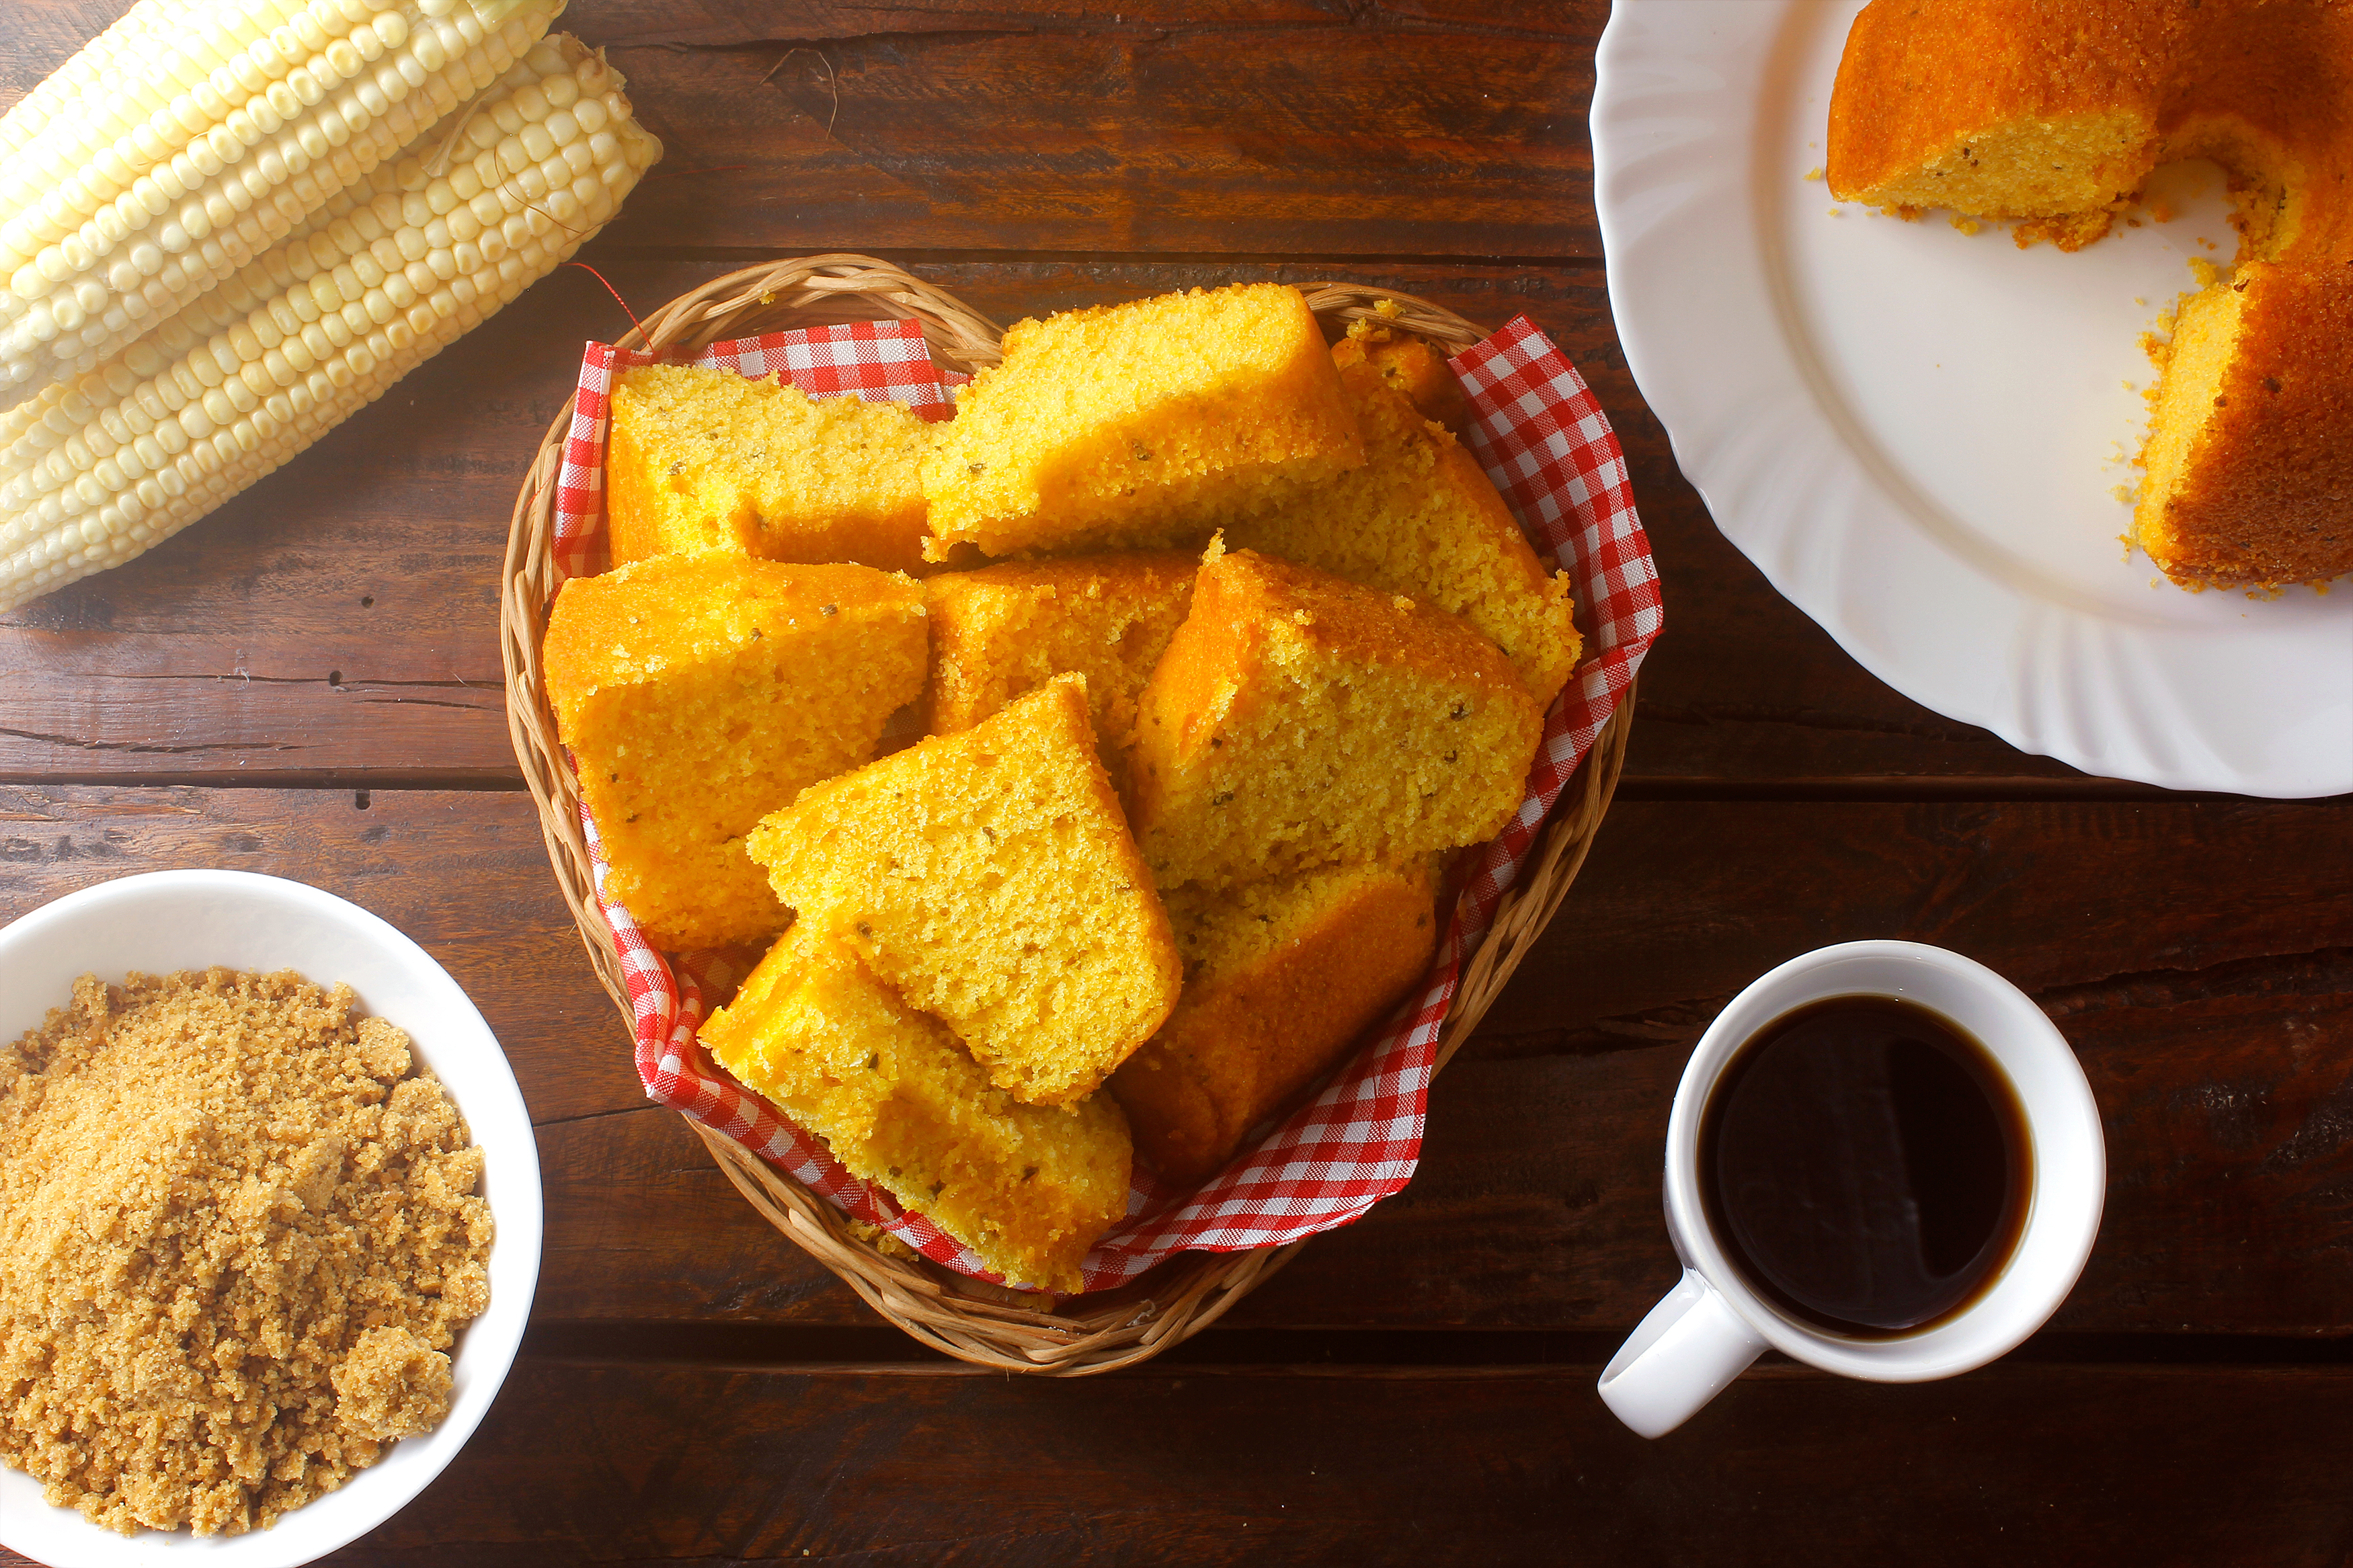 corn cake sliced in basket on rustic wooden table for breakfast. Typical Brazilian food. Top view